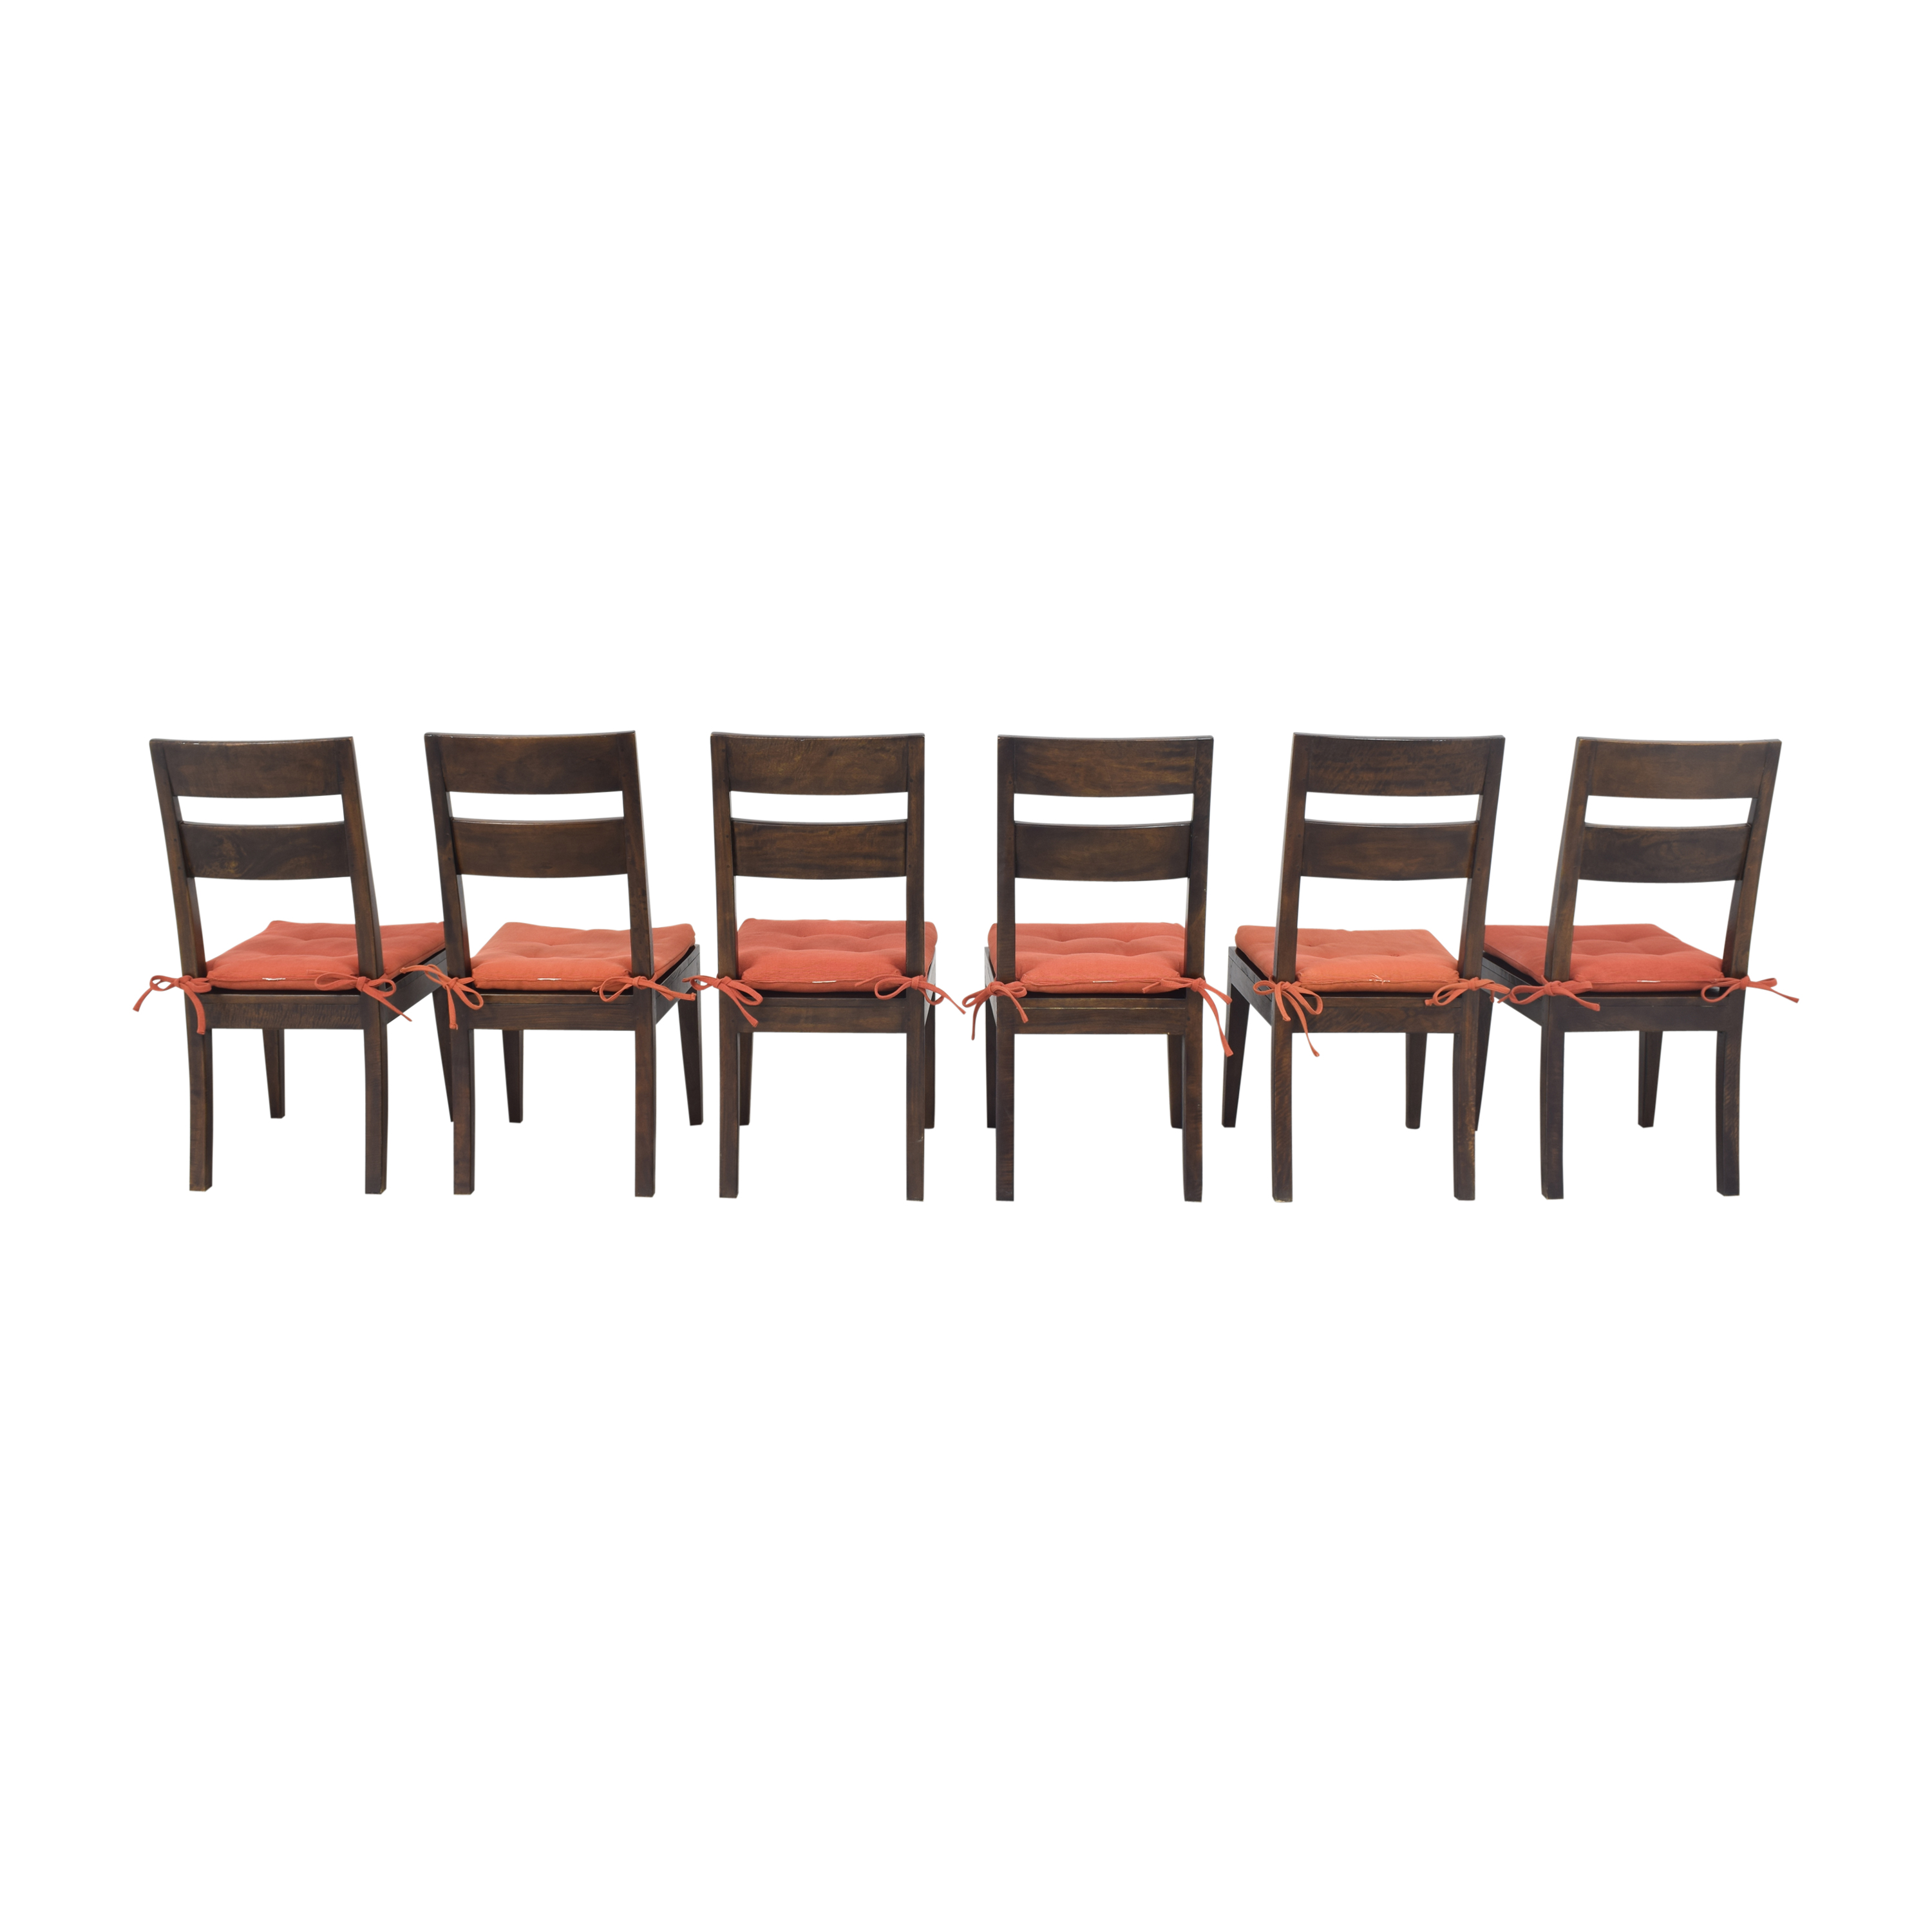 shop Crate & Barrel Basque Dining Side Chairs Crate & Barrel